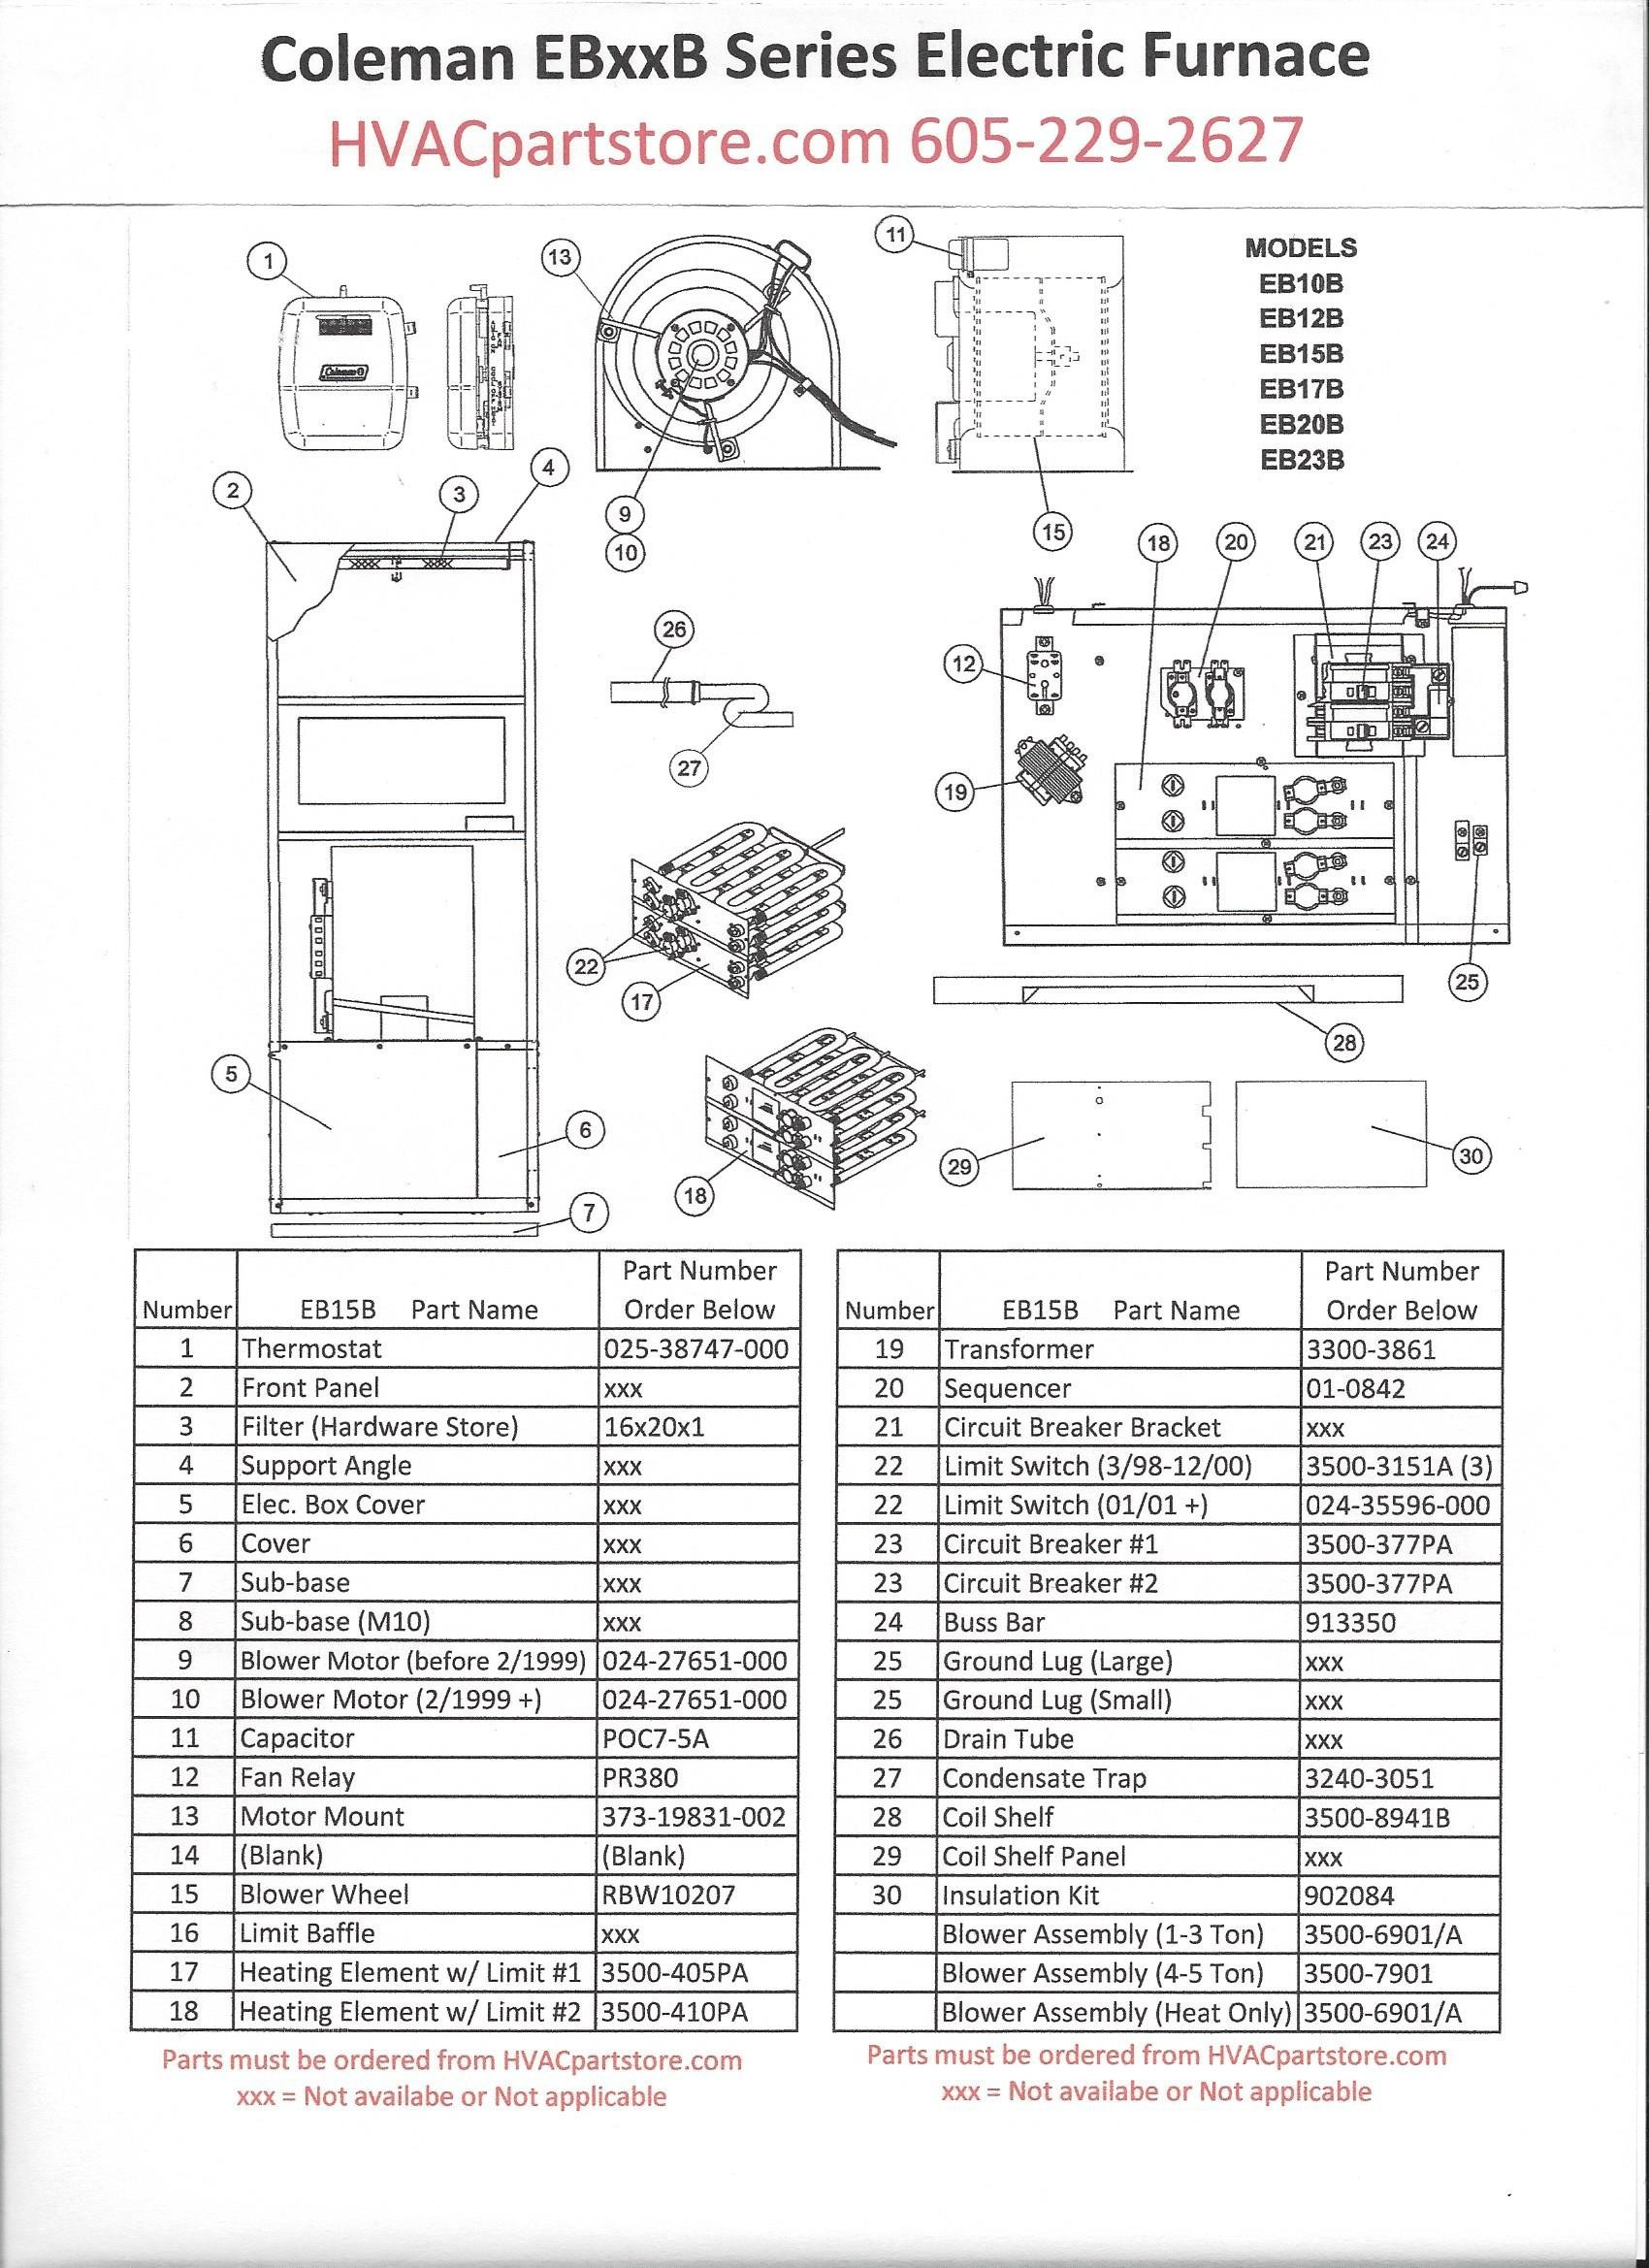 Electrical Diagram for House Best Suburban Rv Furnace Wiring Diagram the at In Wiring Diagram